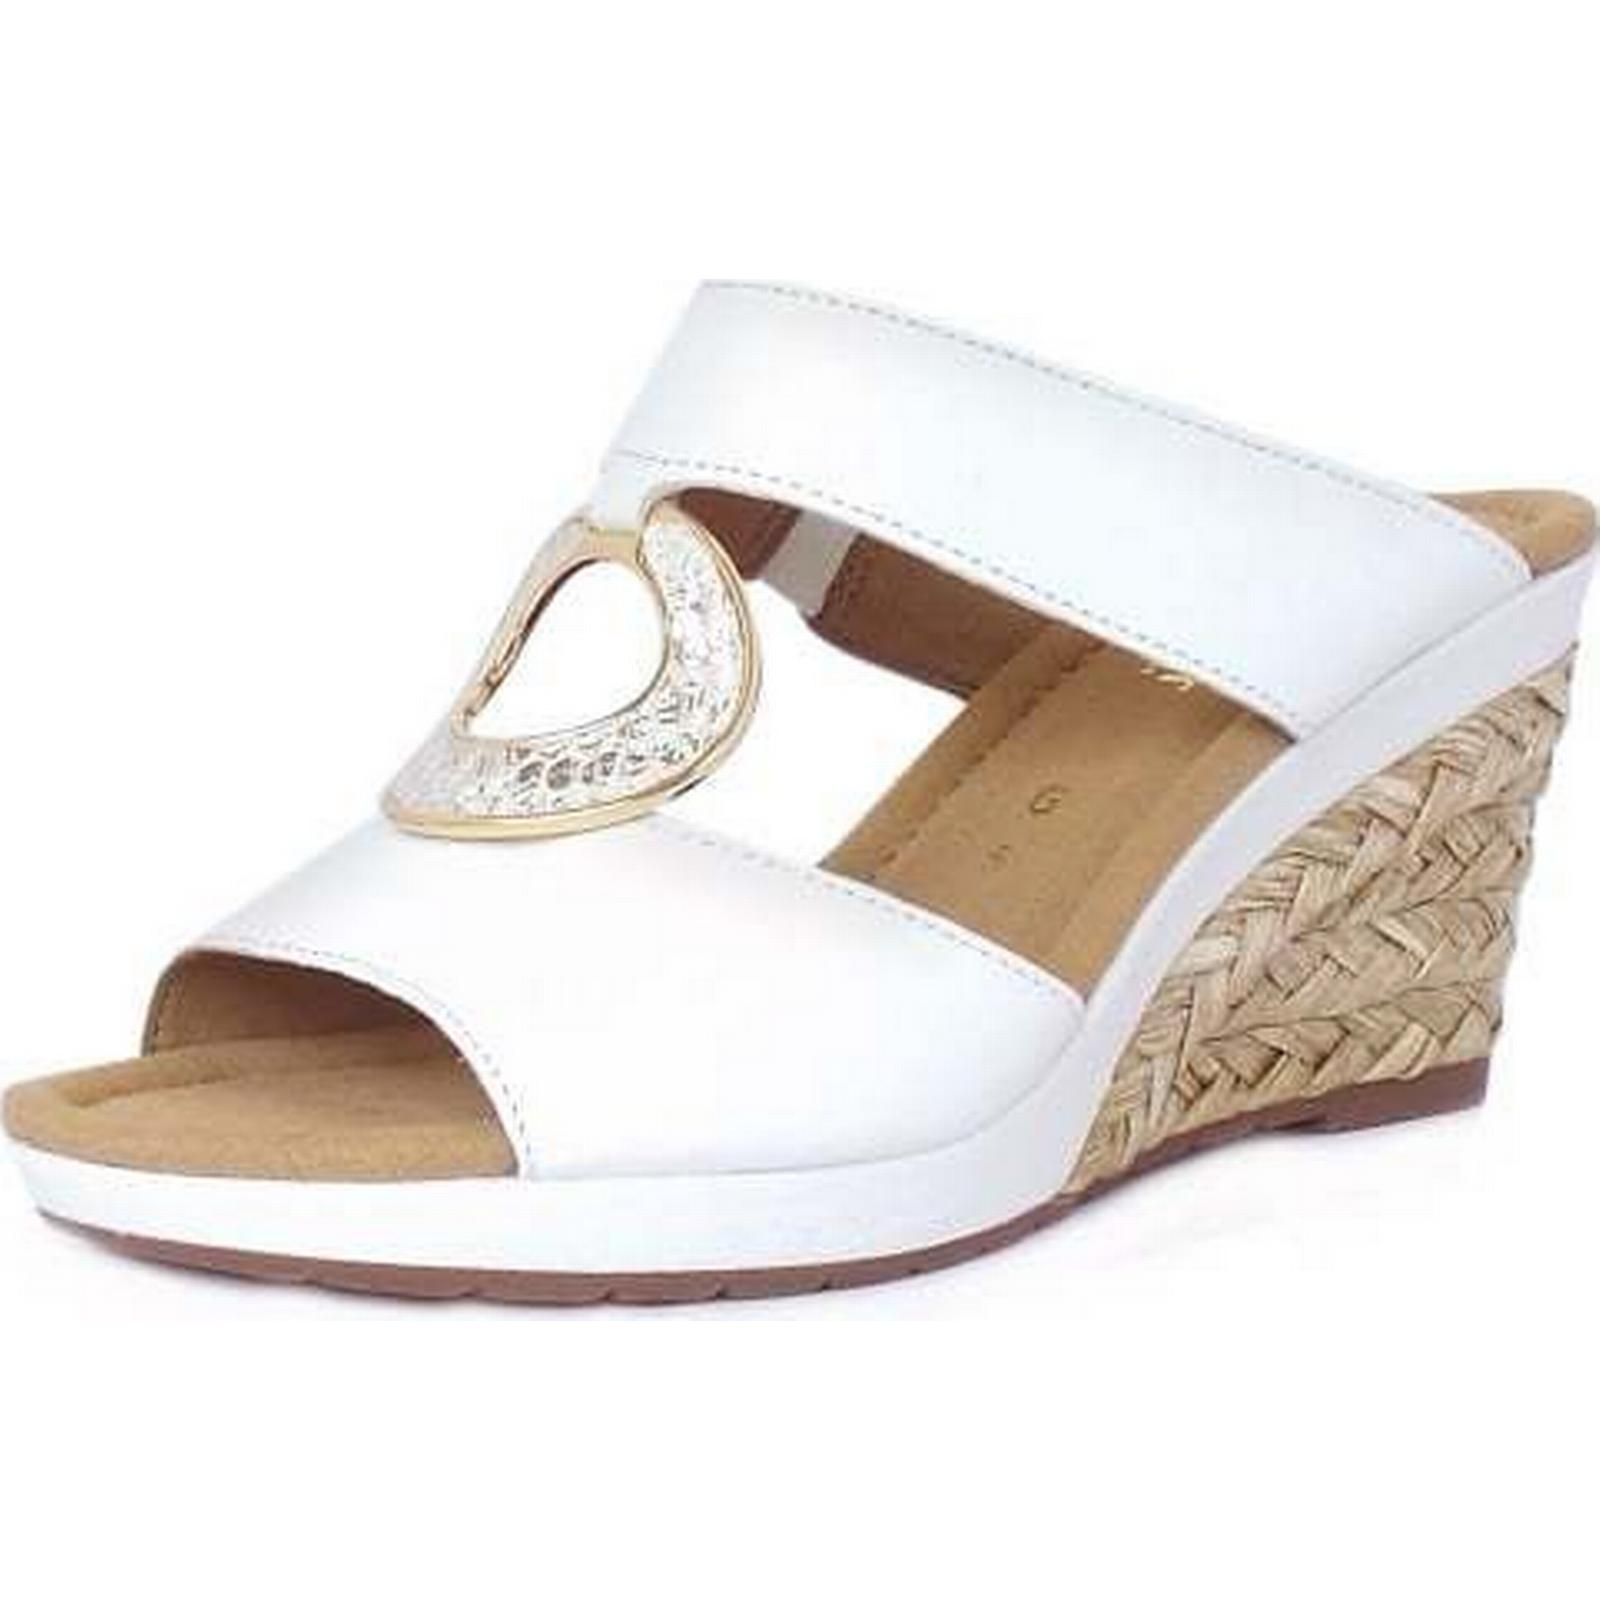 Gabor SIZZLE GABOR LADIES SUMMER SANDALS Size: 5, 5, Size: Colour: WHITE 18fc57